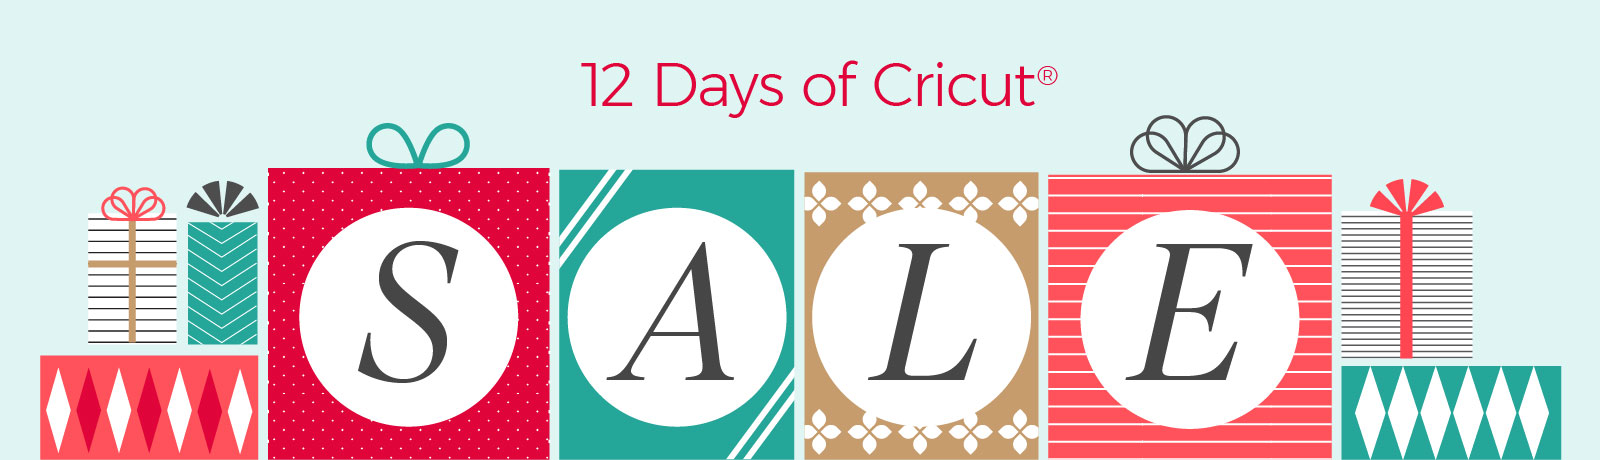 12 Days Of Cricut! New Deals Each Day!